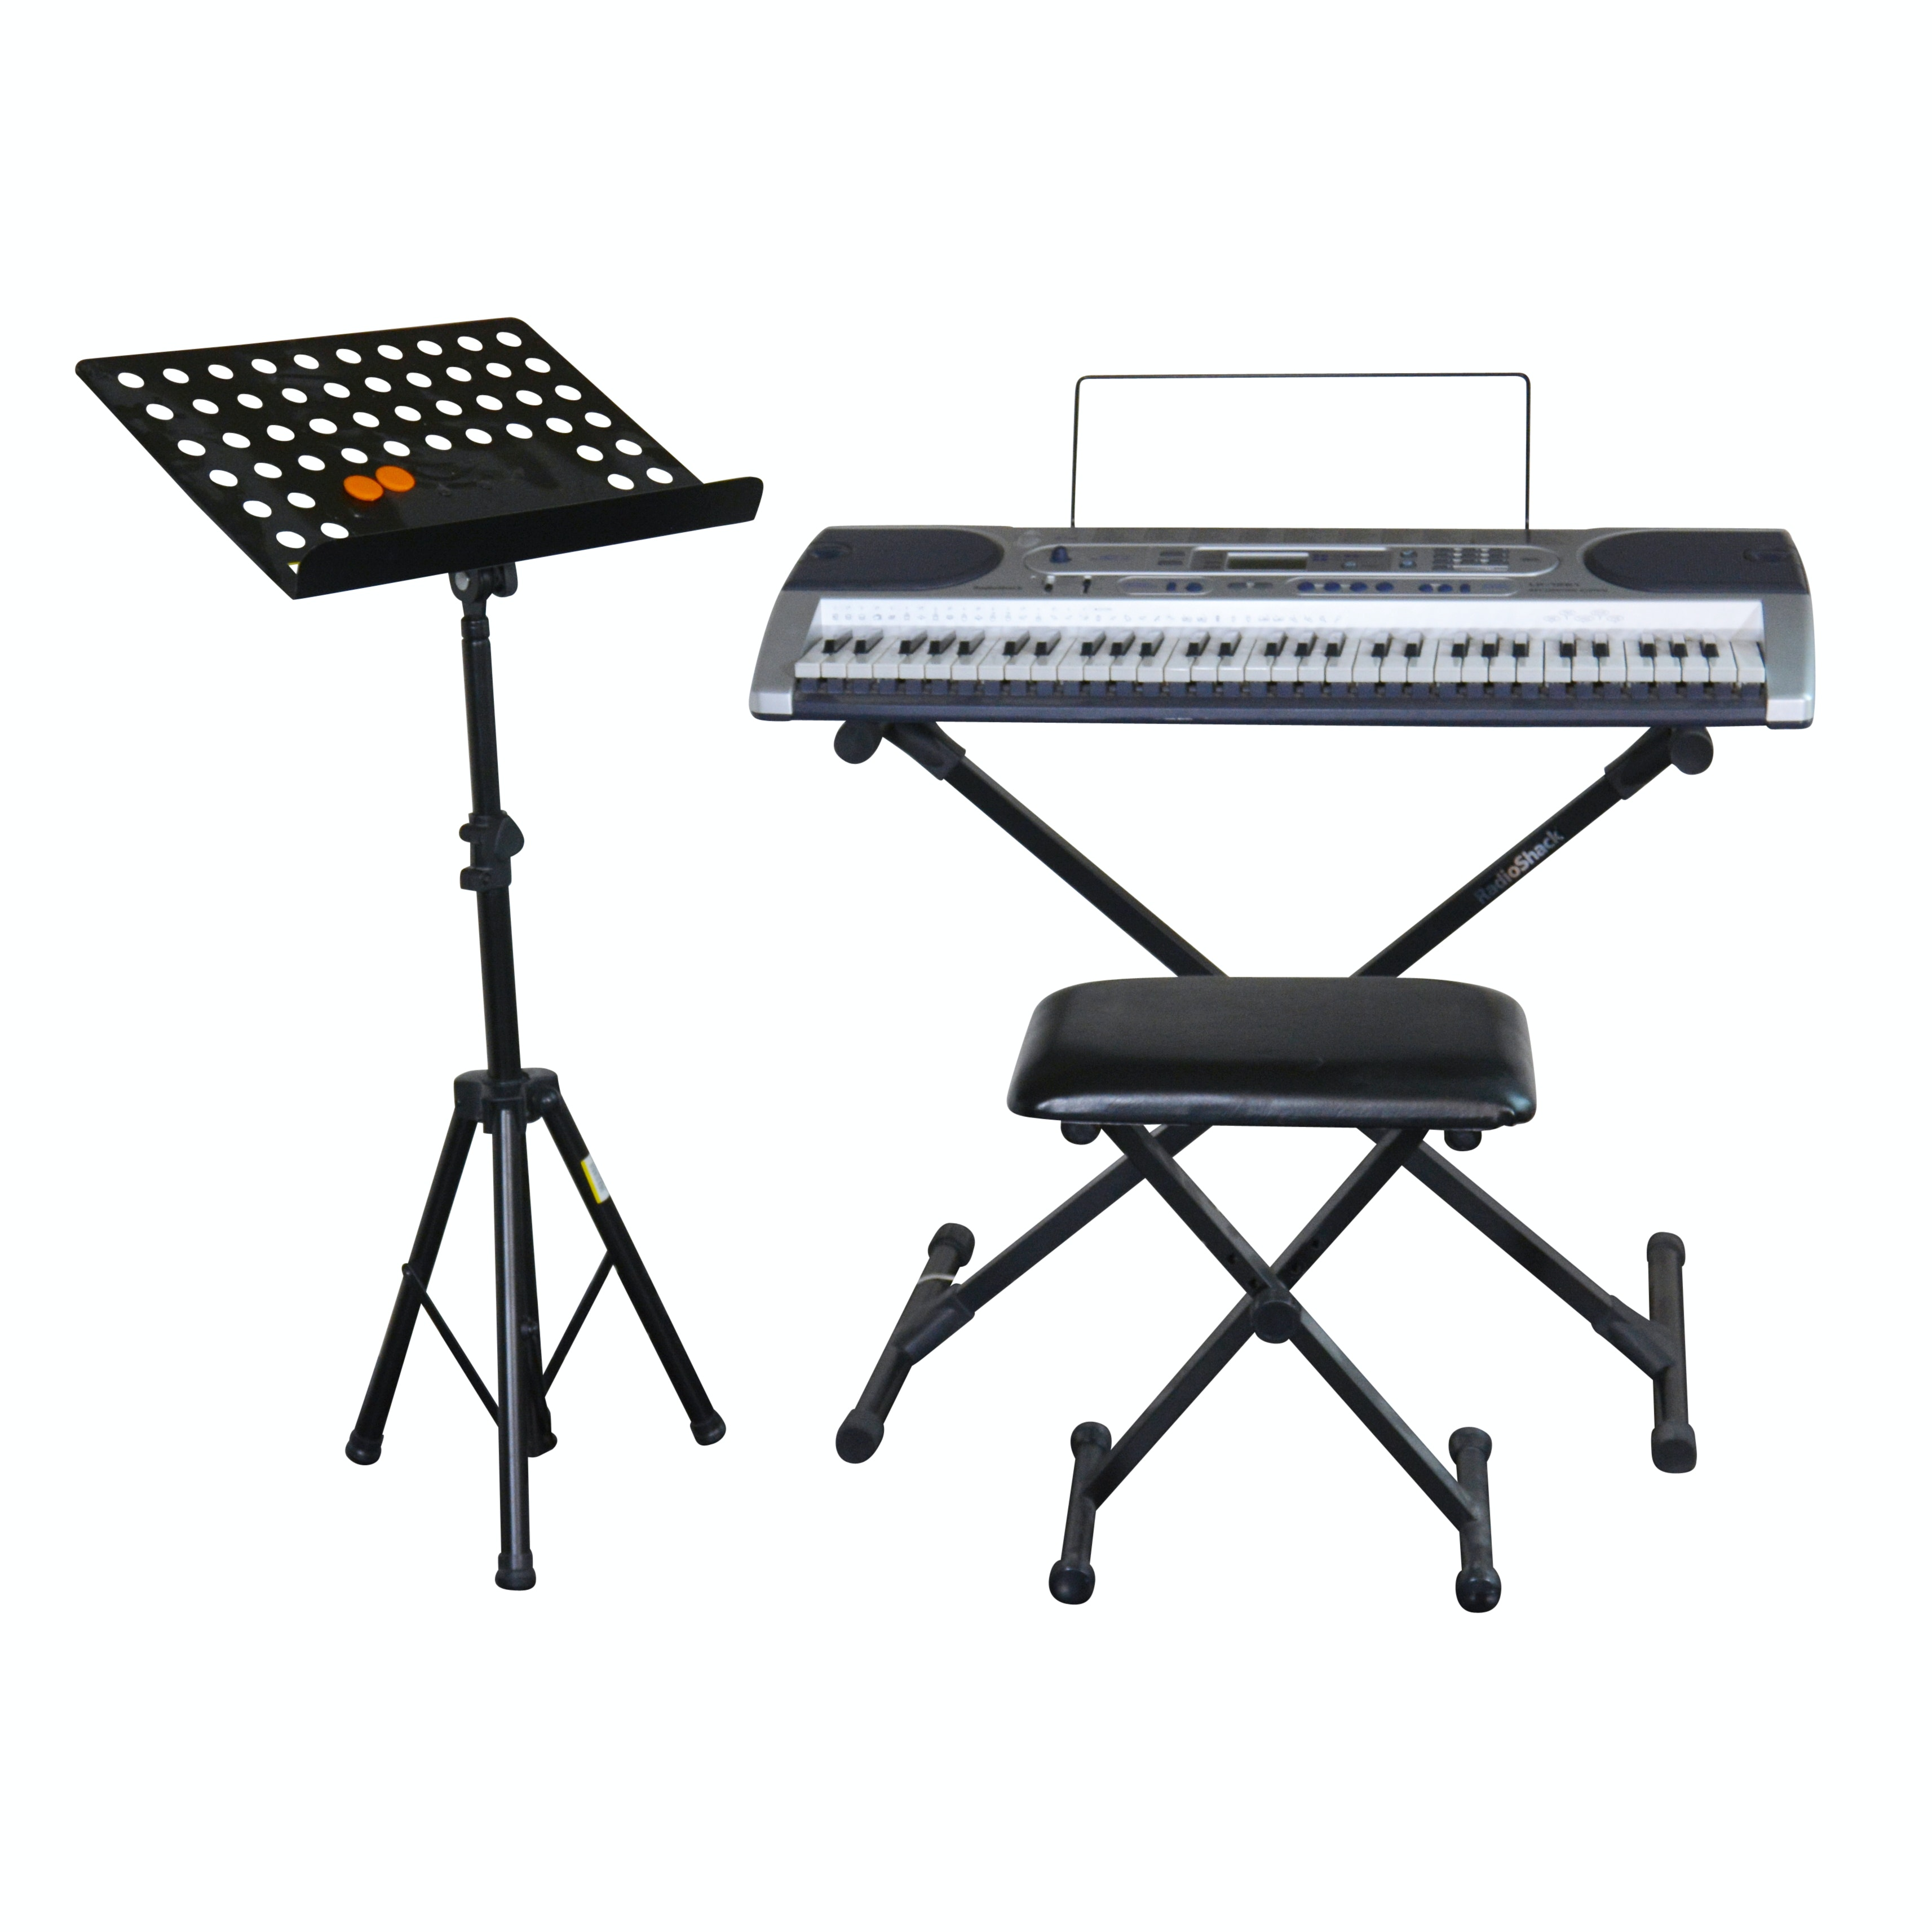 Radio Shack Keyboard LK -1261, Bench and Music Stand